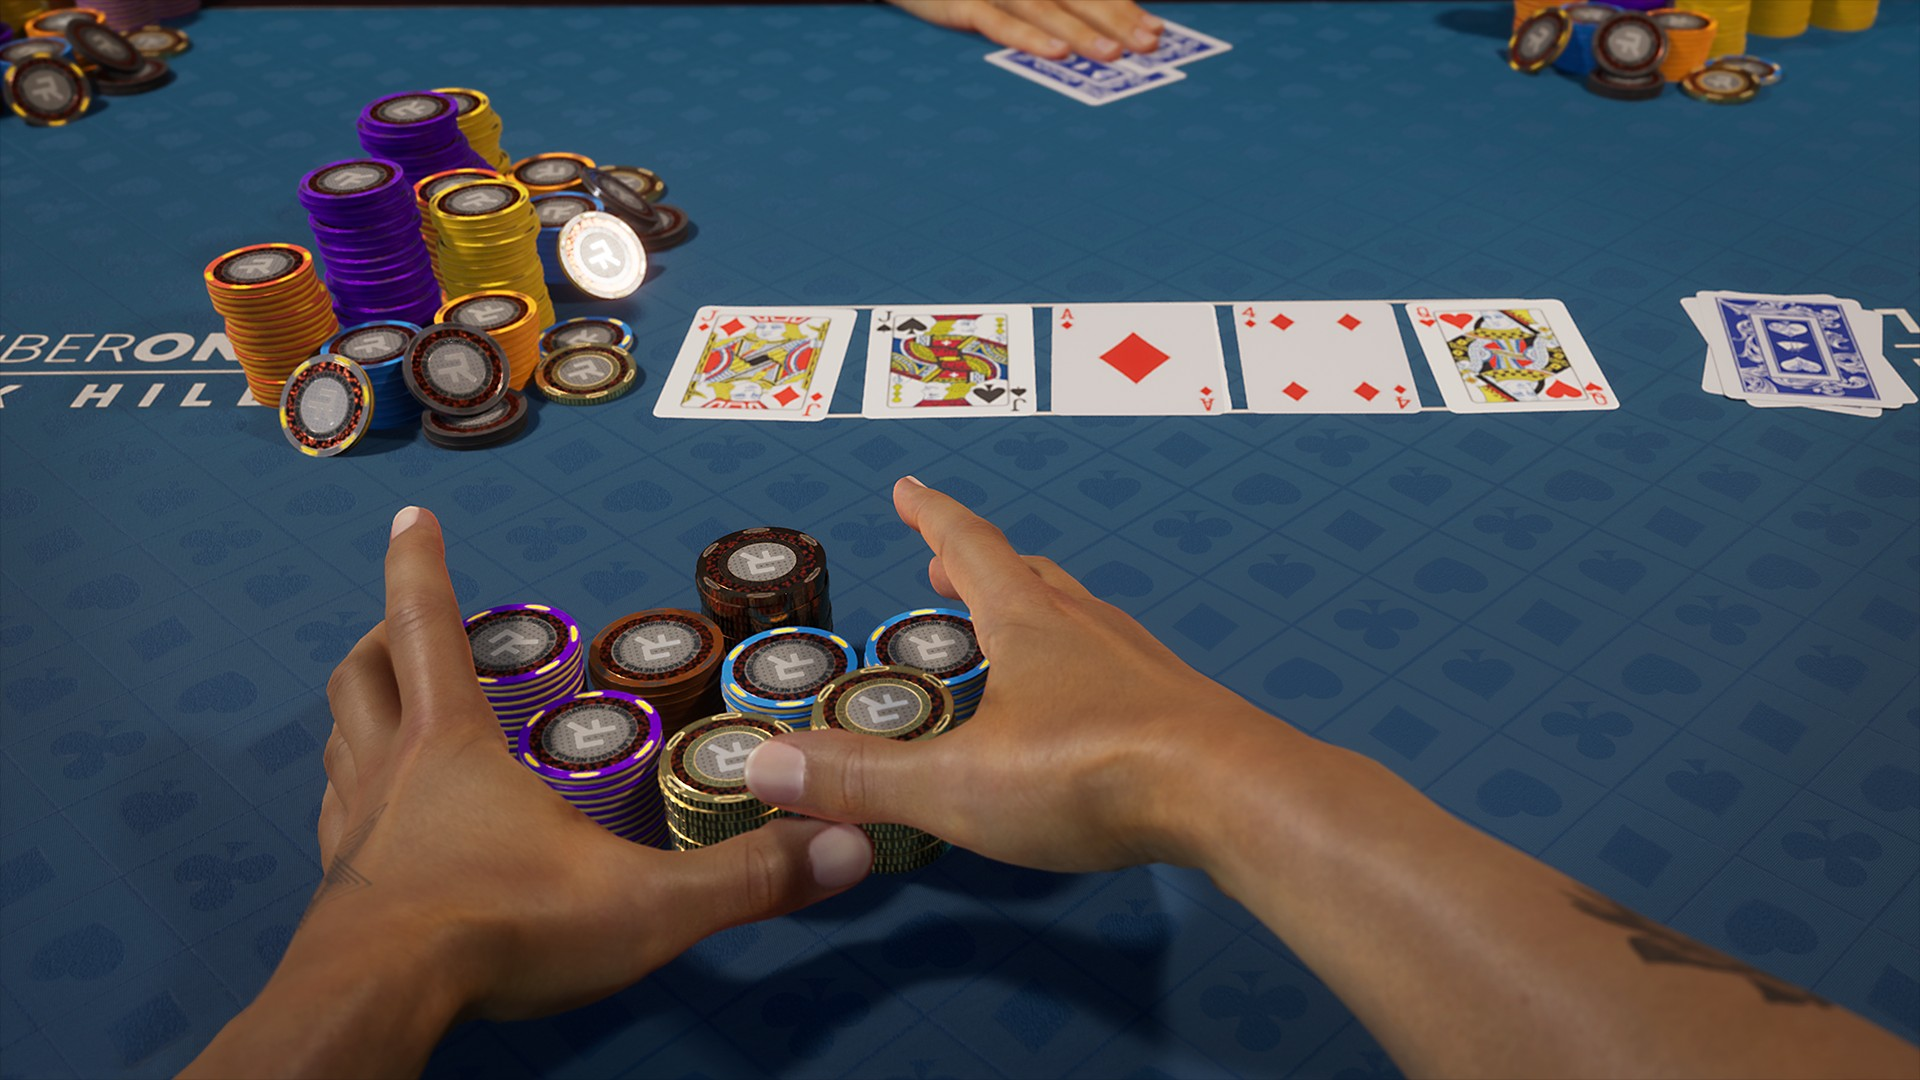 How Much Do You Charge For Online Casino